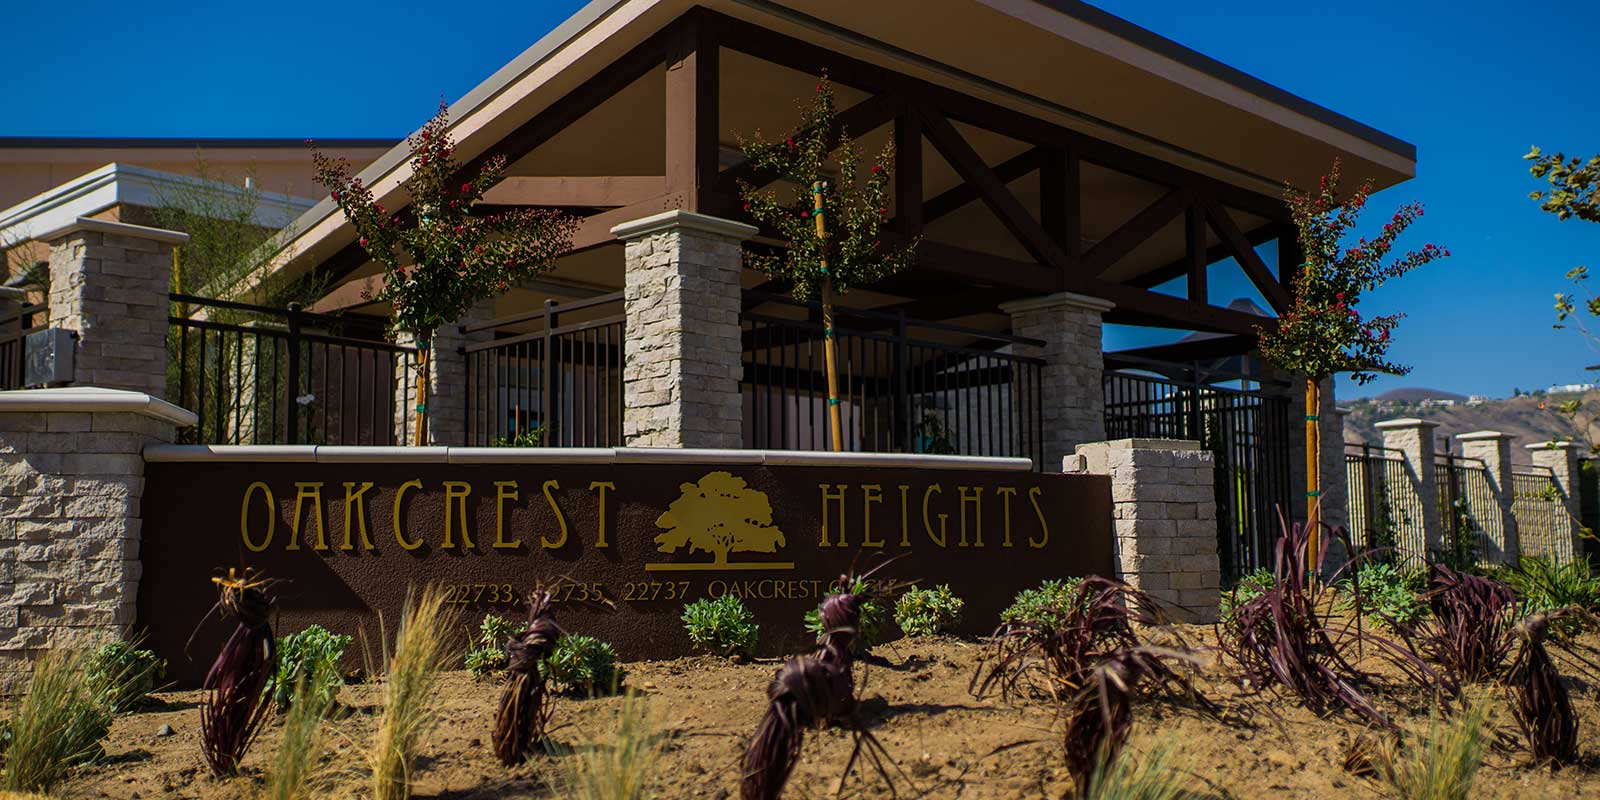 Opening of Oakcrest Heights community will help low-, extremely low-income families and individuals transform their lives